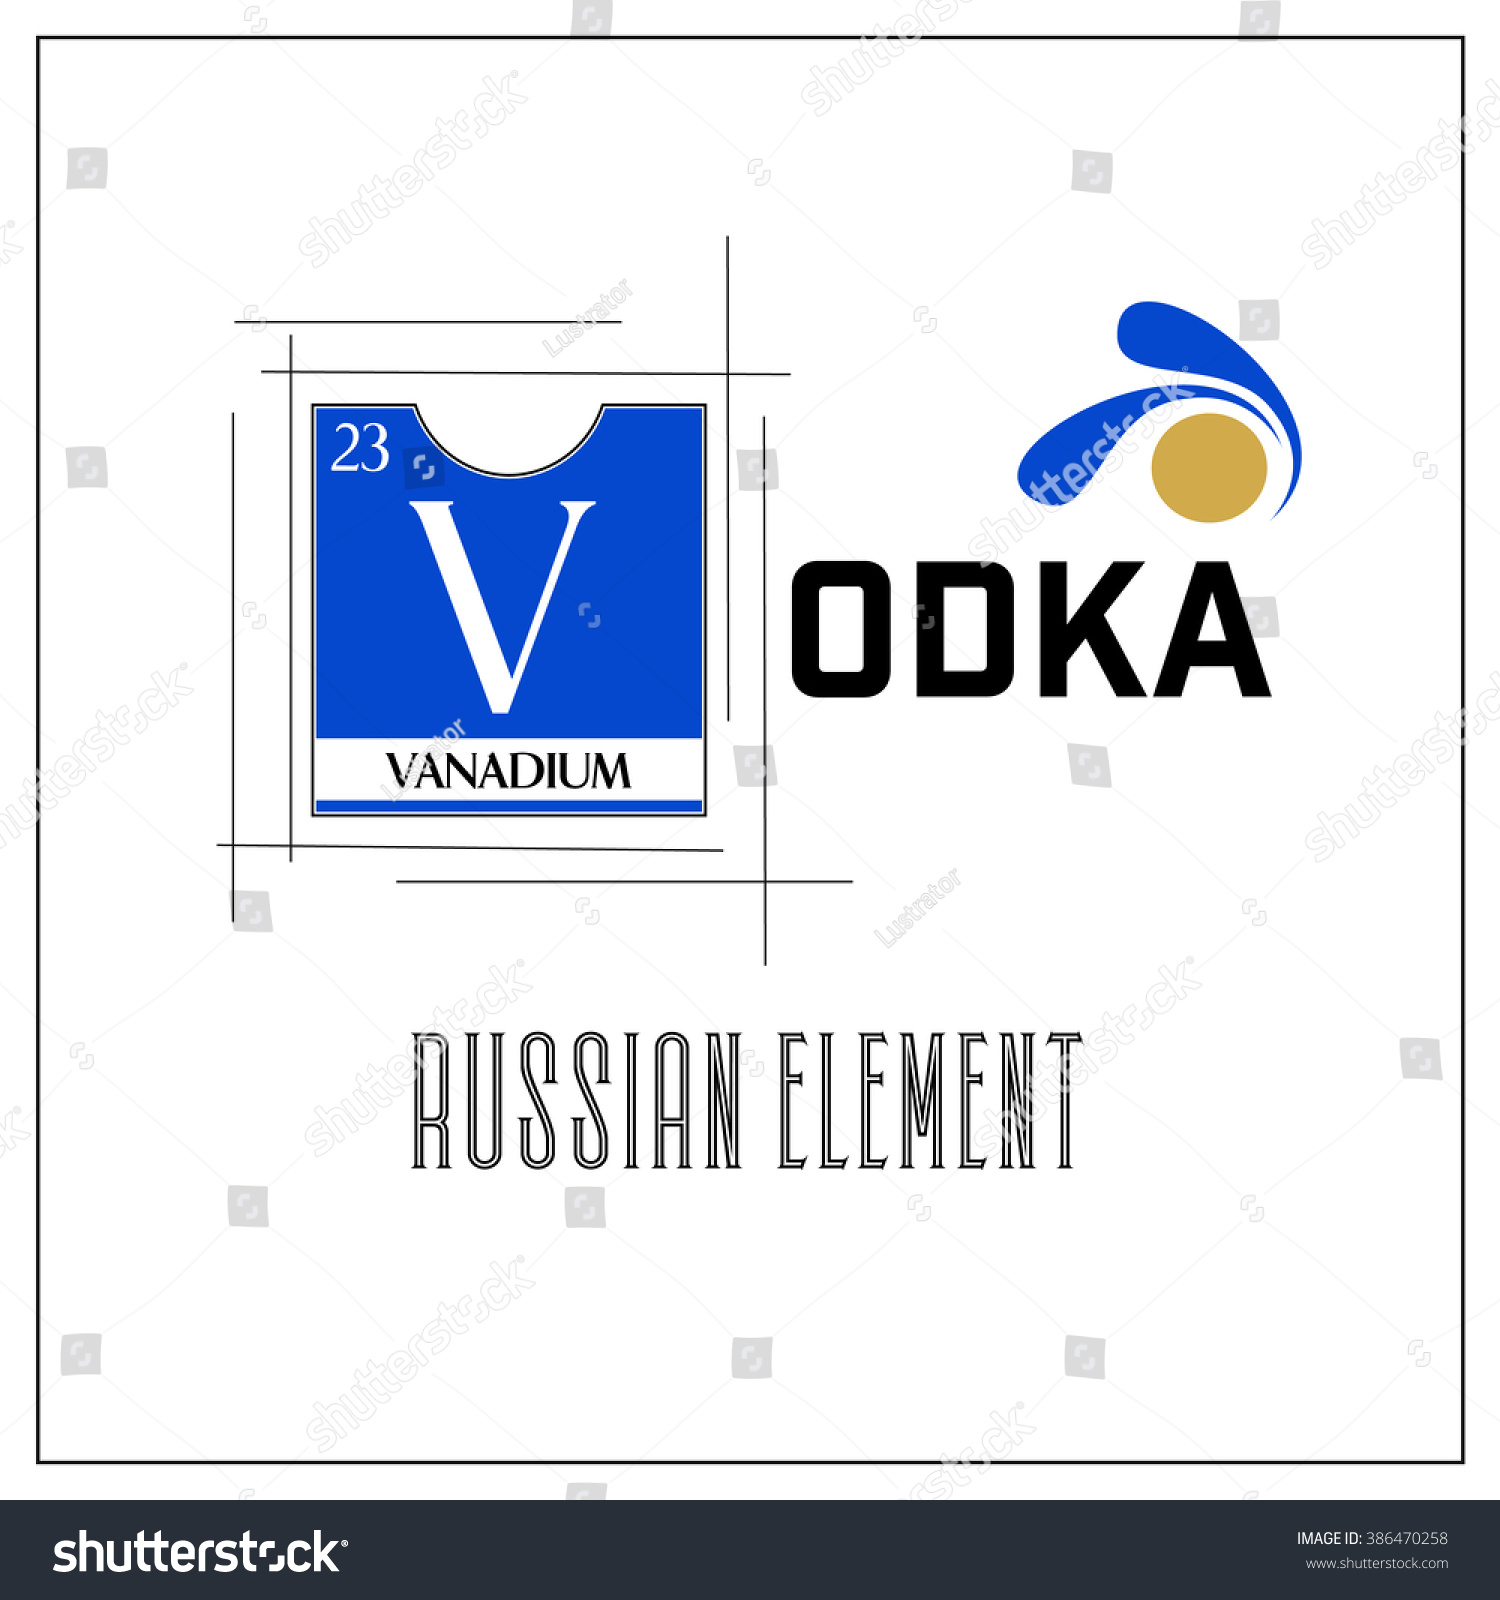 Periodic table with all labels choice image periodic table images label of periodic table choice image periodic table images vodka sign label periodic table elements stock gamestrikefo Image collections